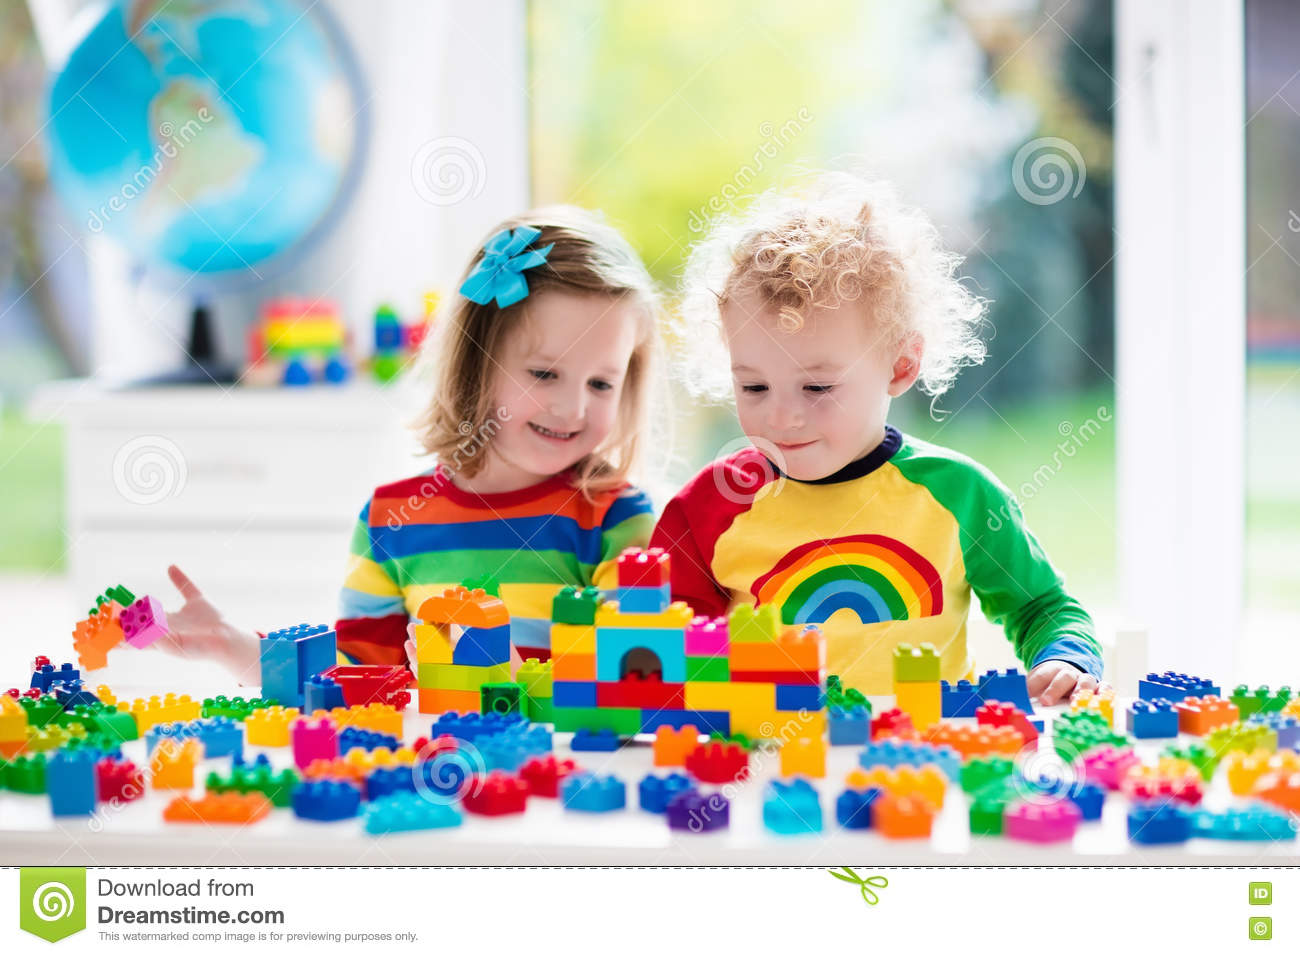 Kinder Garden: Kids Playing With Colorful Plastic Blocks Stock Photo